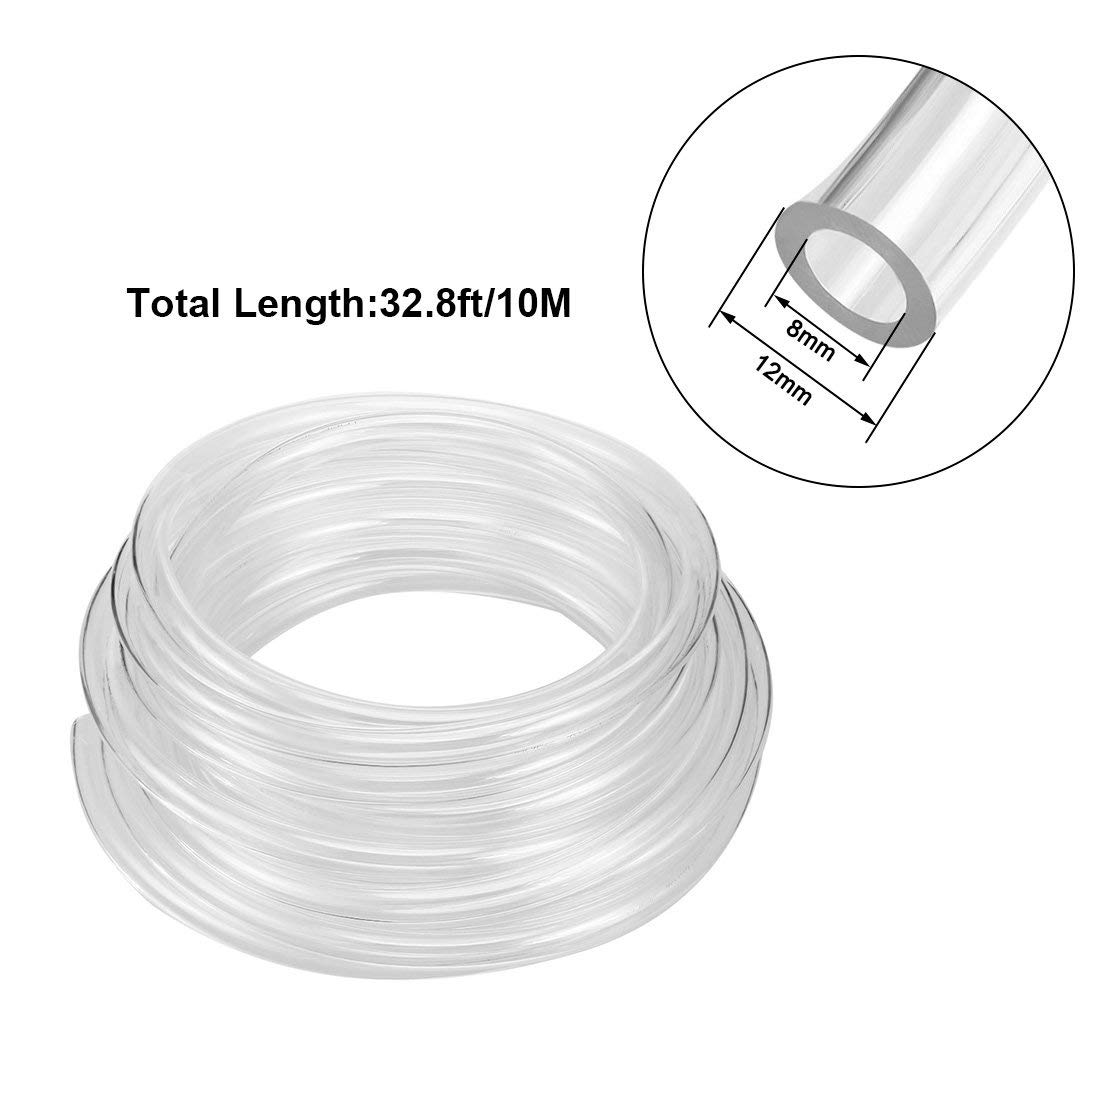 Wholesale 10 Meter 32.8ft 12mm X 8mm Pneumatic Air PU Hose Pipe Tube Clear Transparent High Pressure Pneumatic Component Hose